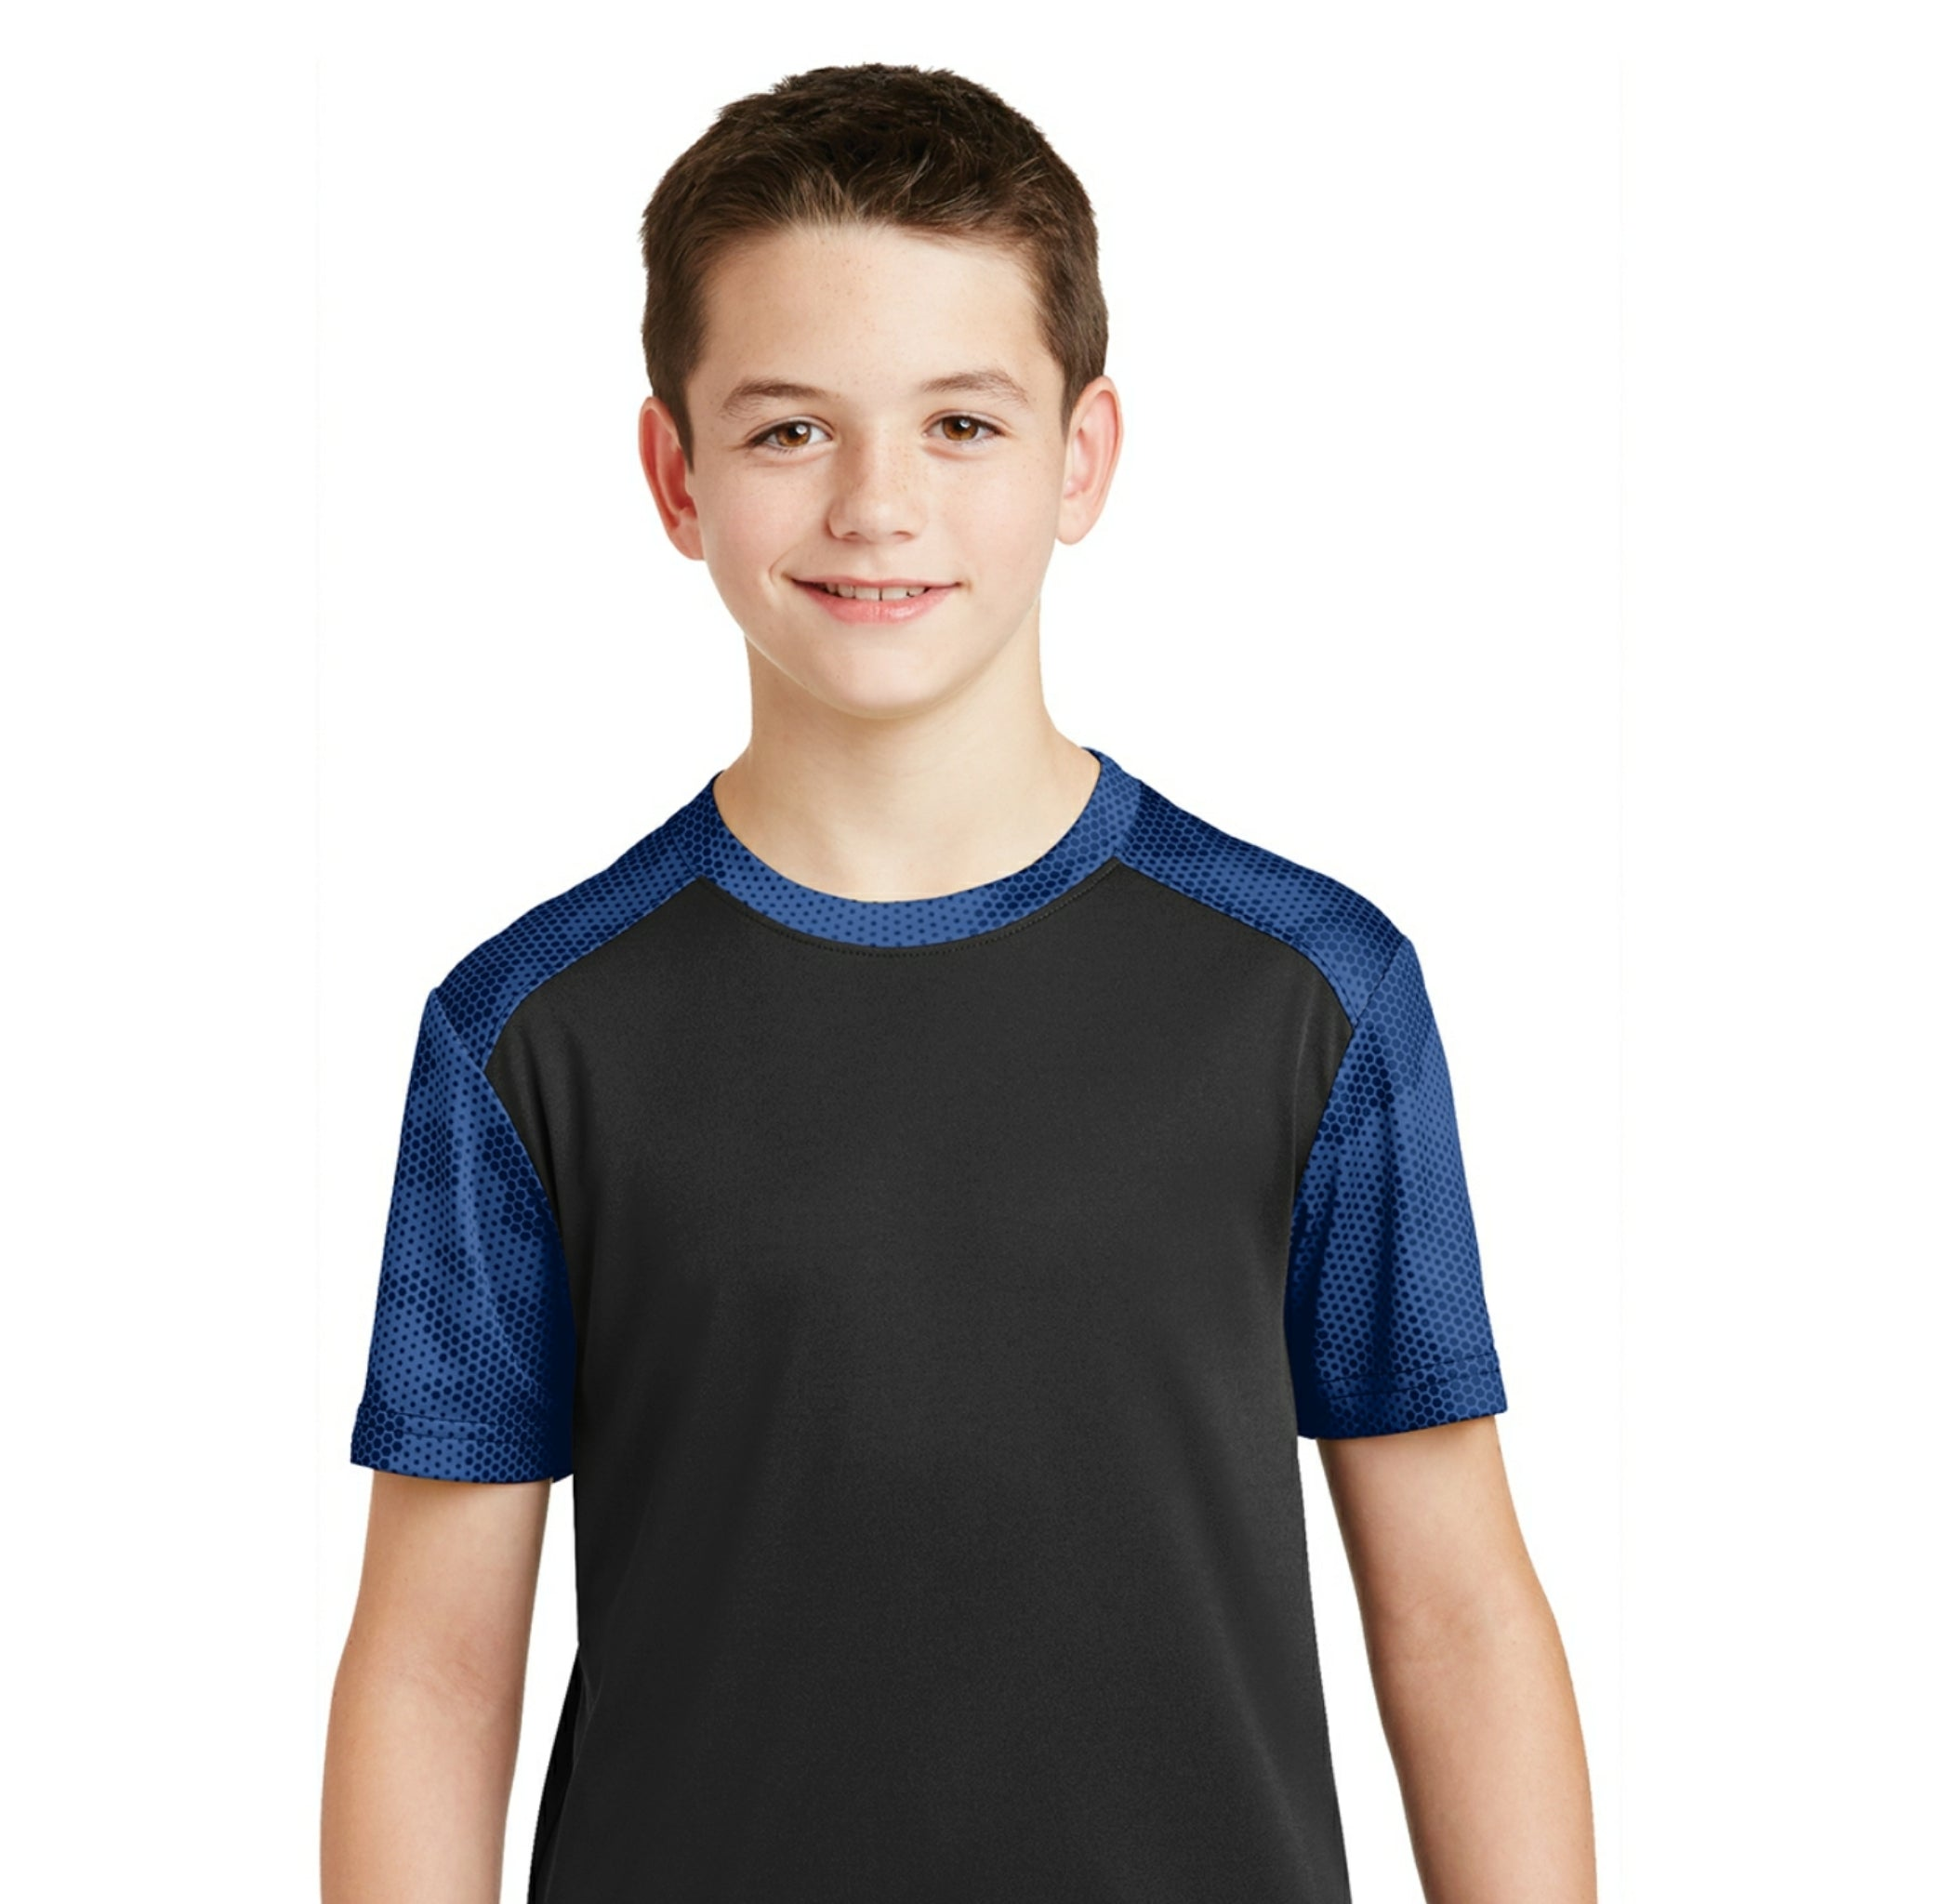 attached front panel camohex colorblock children's tee Black/Blue Camohex